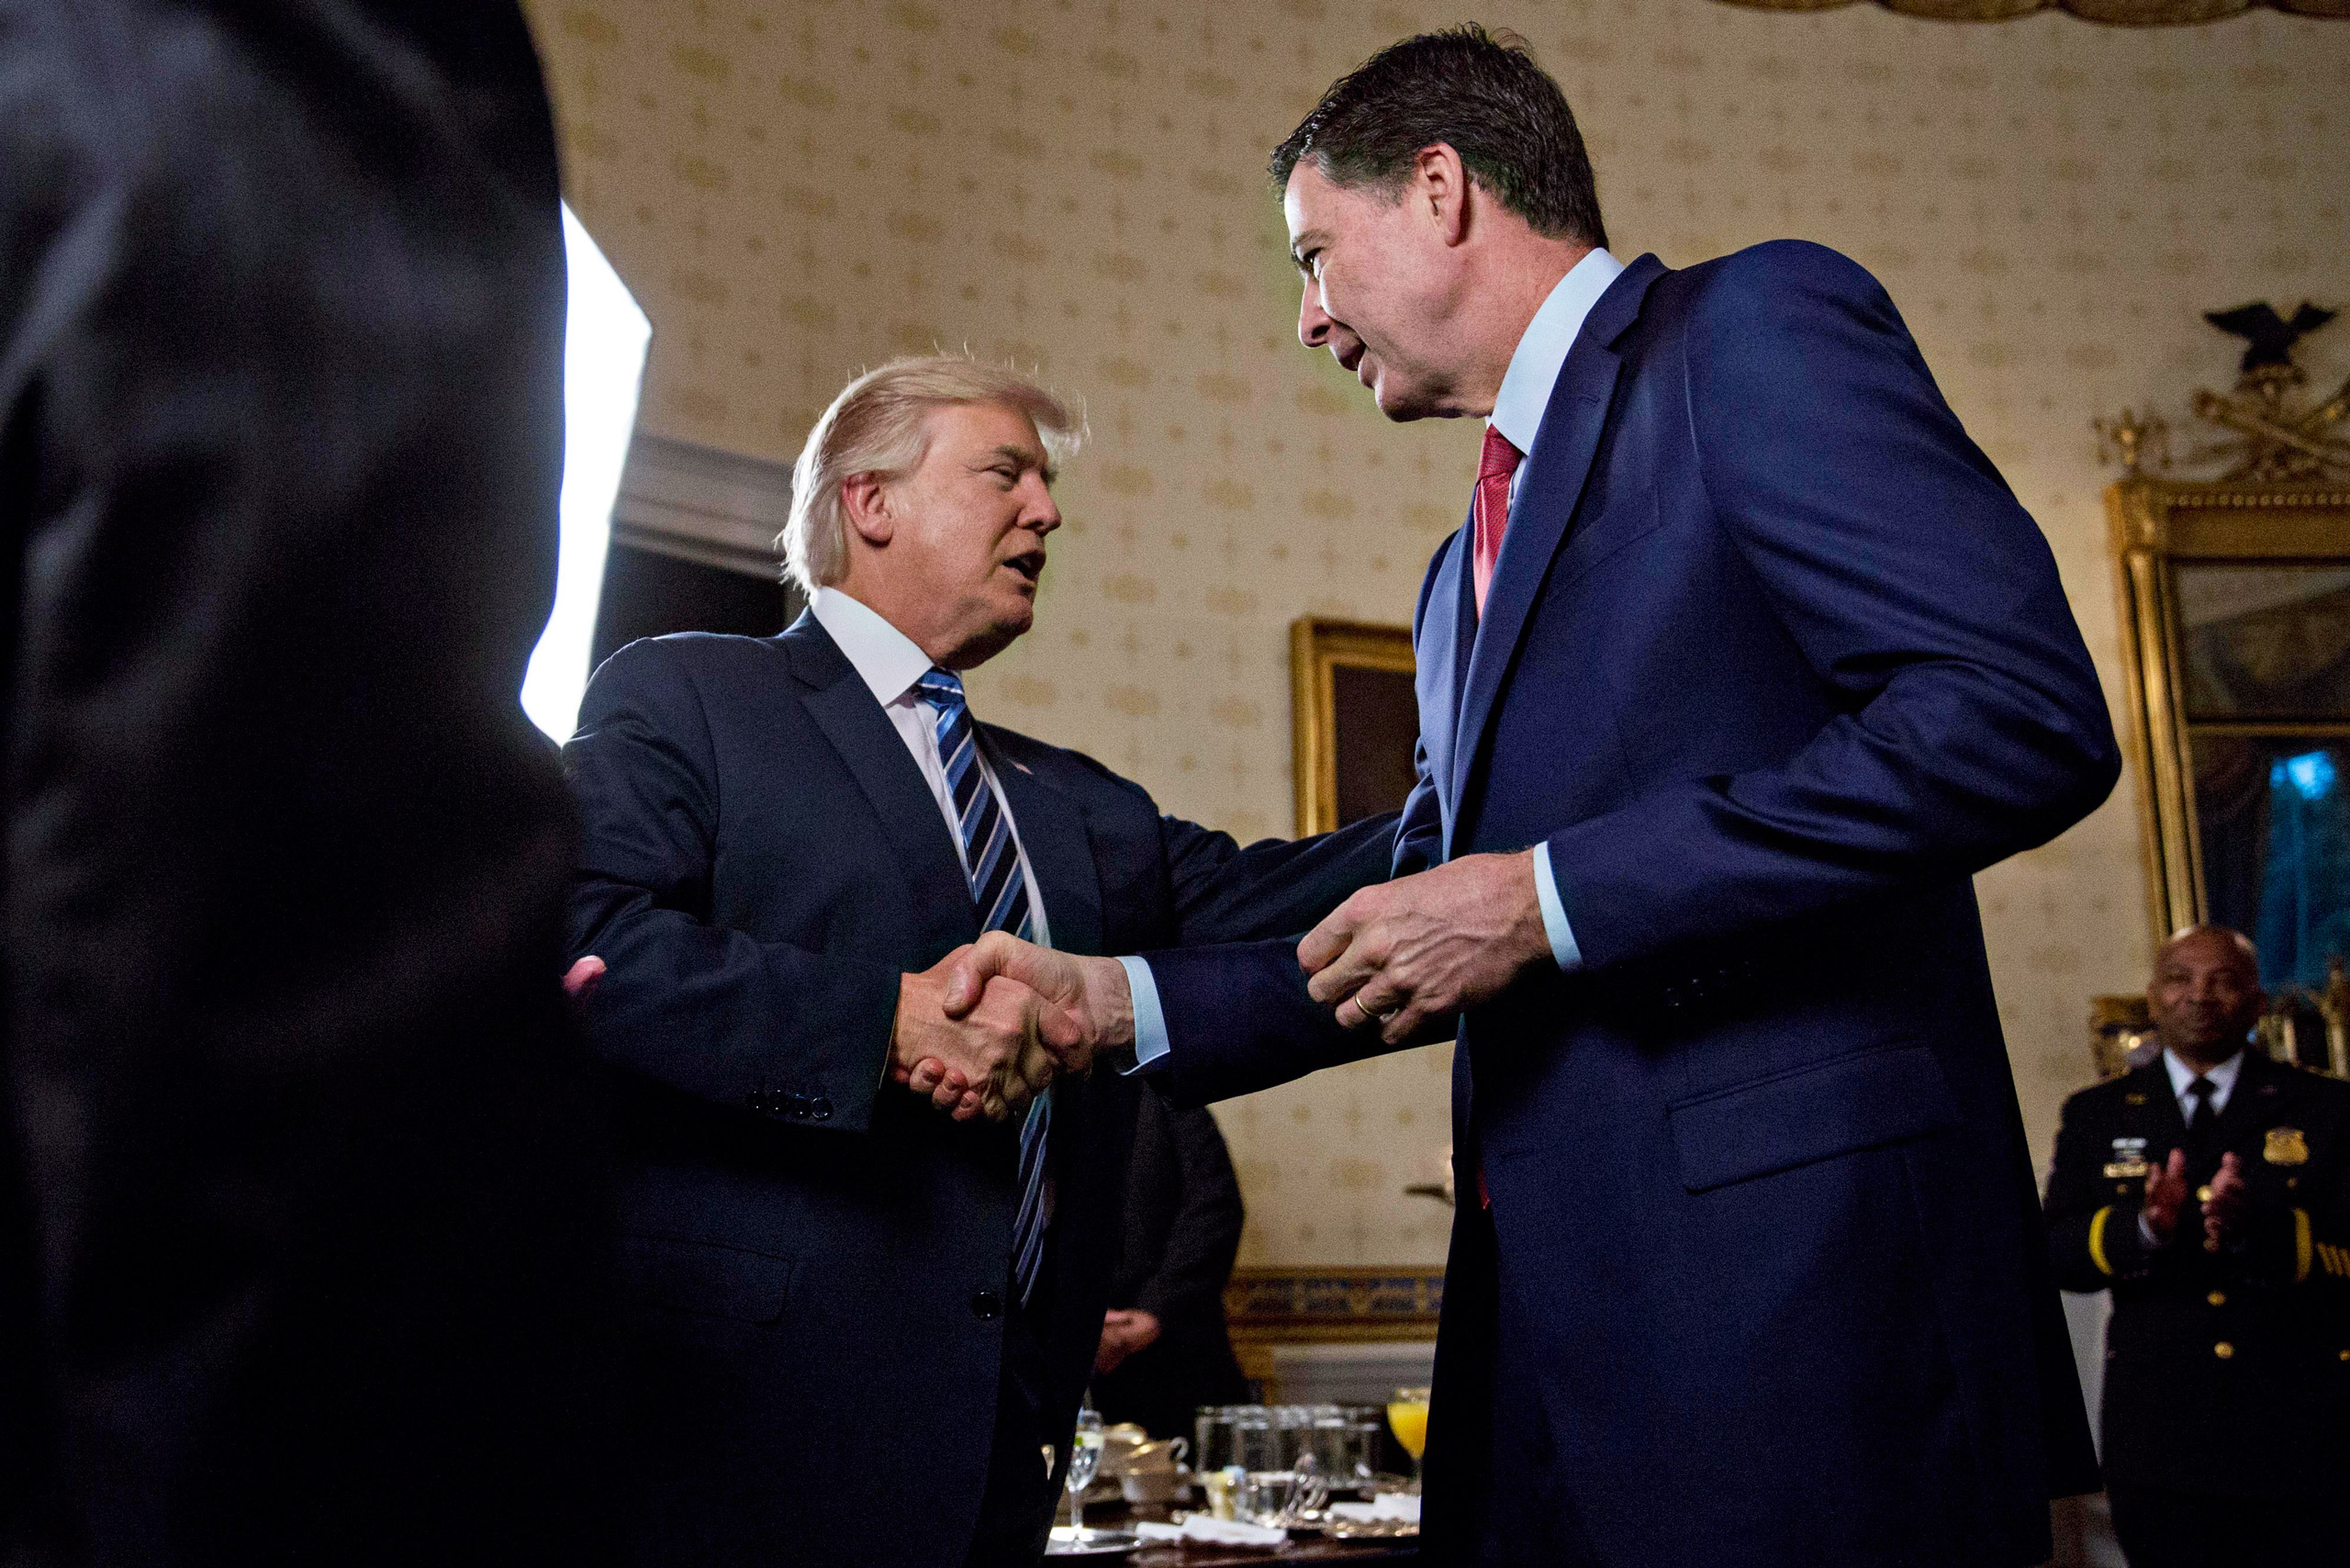 President Trump shook hands with Comey during an Inaugural reception at the White House in January